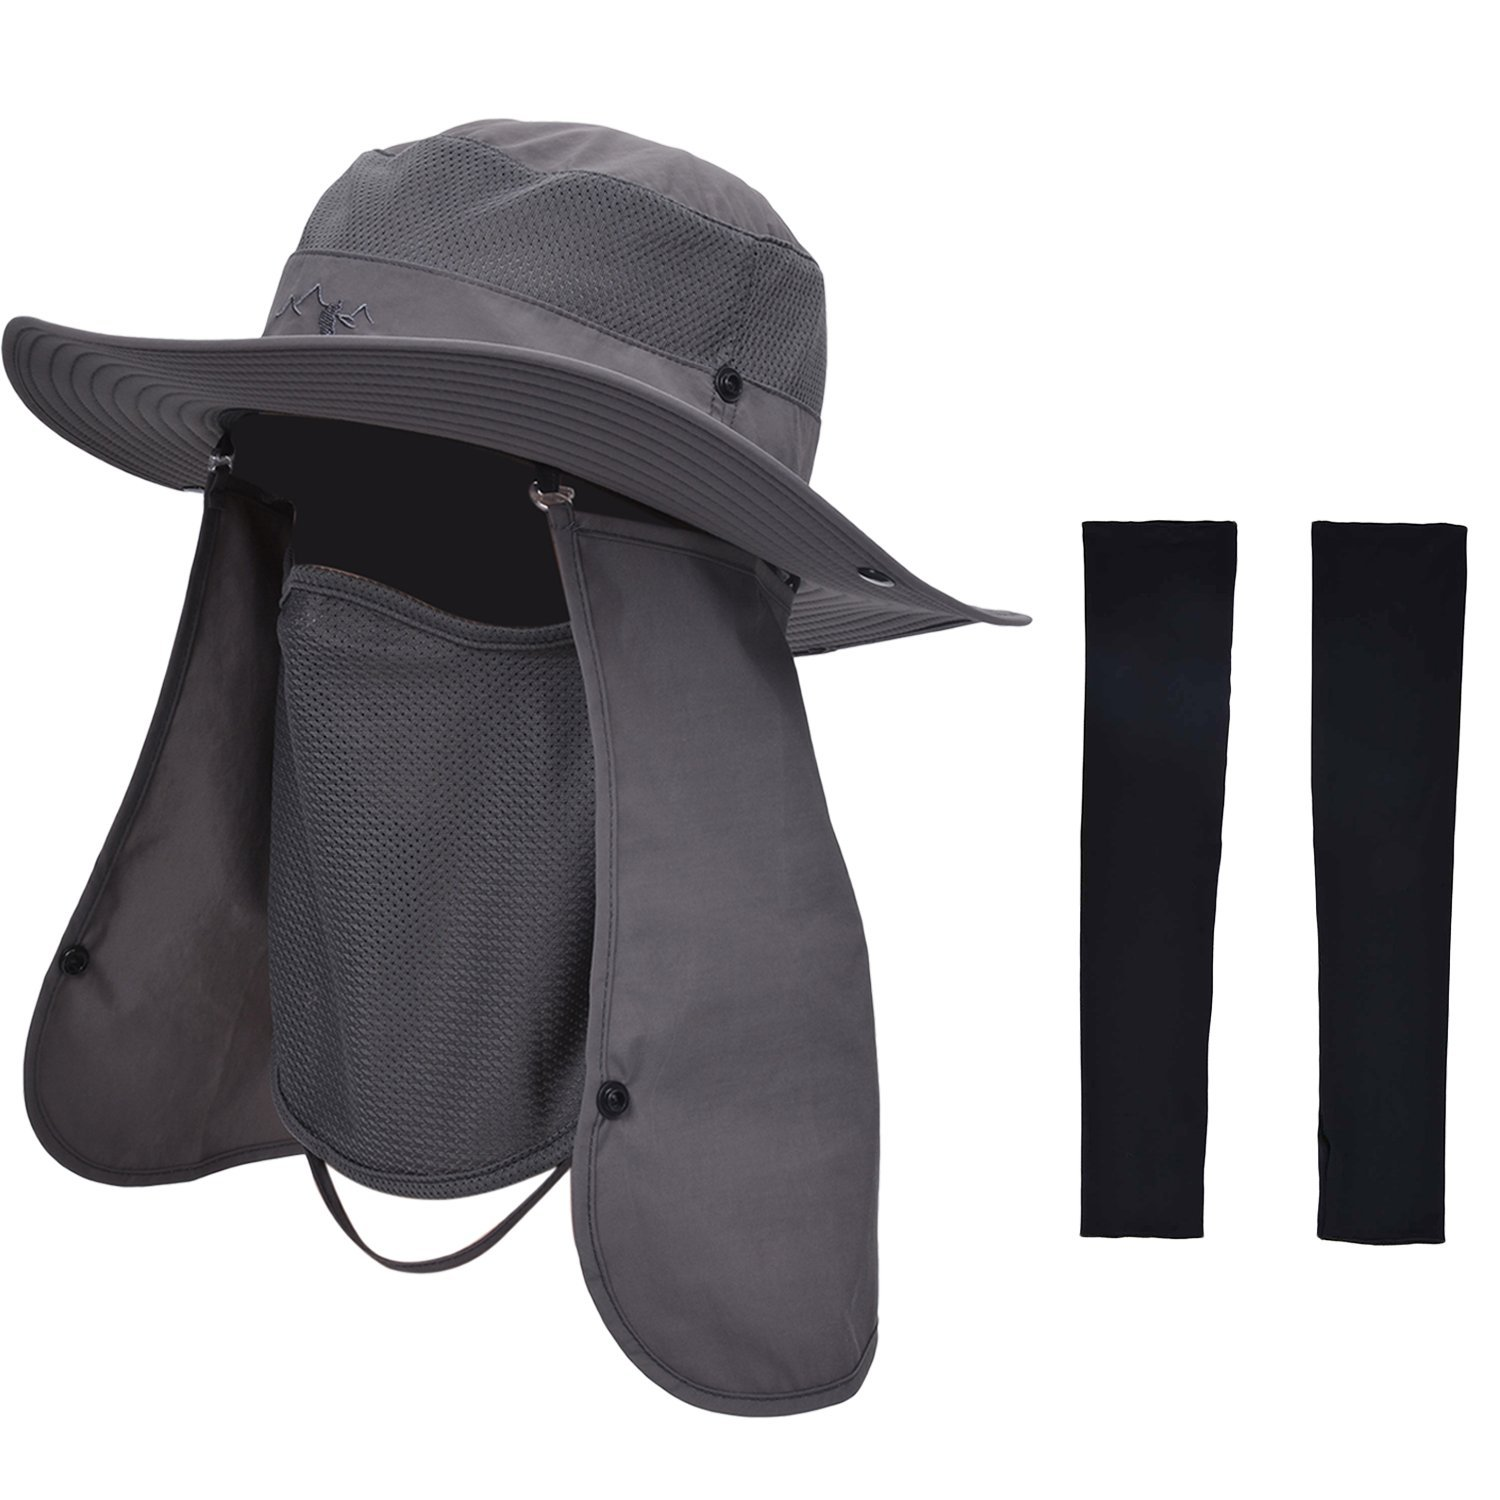 Zoylink Fishing Hat with 1 Pairs Sun Protection Sleeves Summer Outdoor Sun Protection Wide Brim Removable Mesh Neck Face Flap Fishing Cap for Men